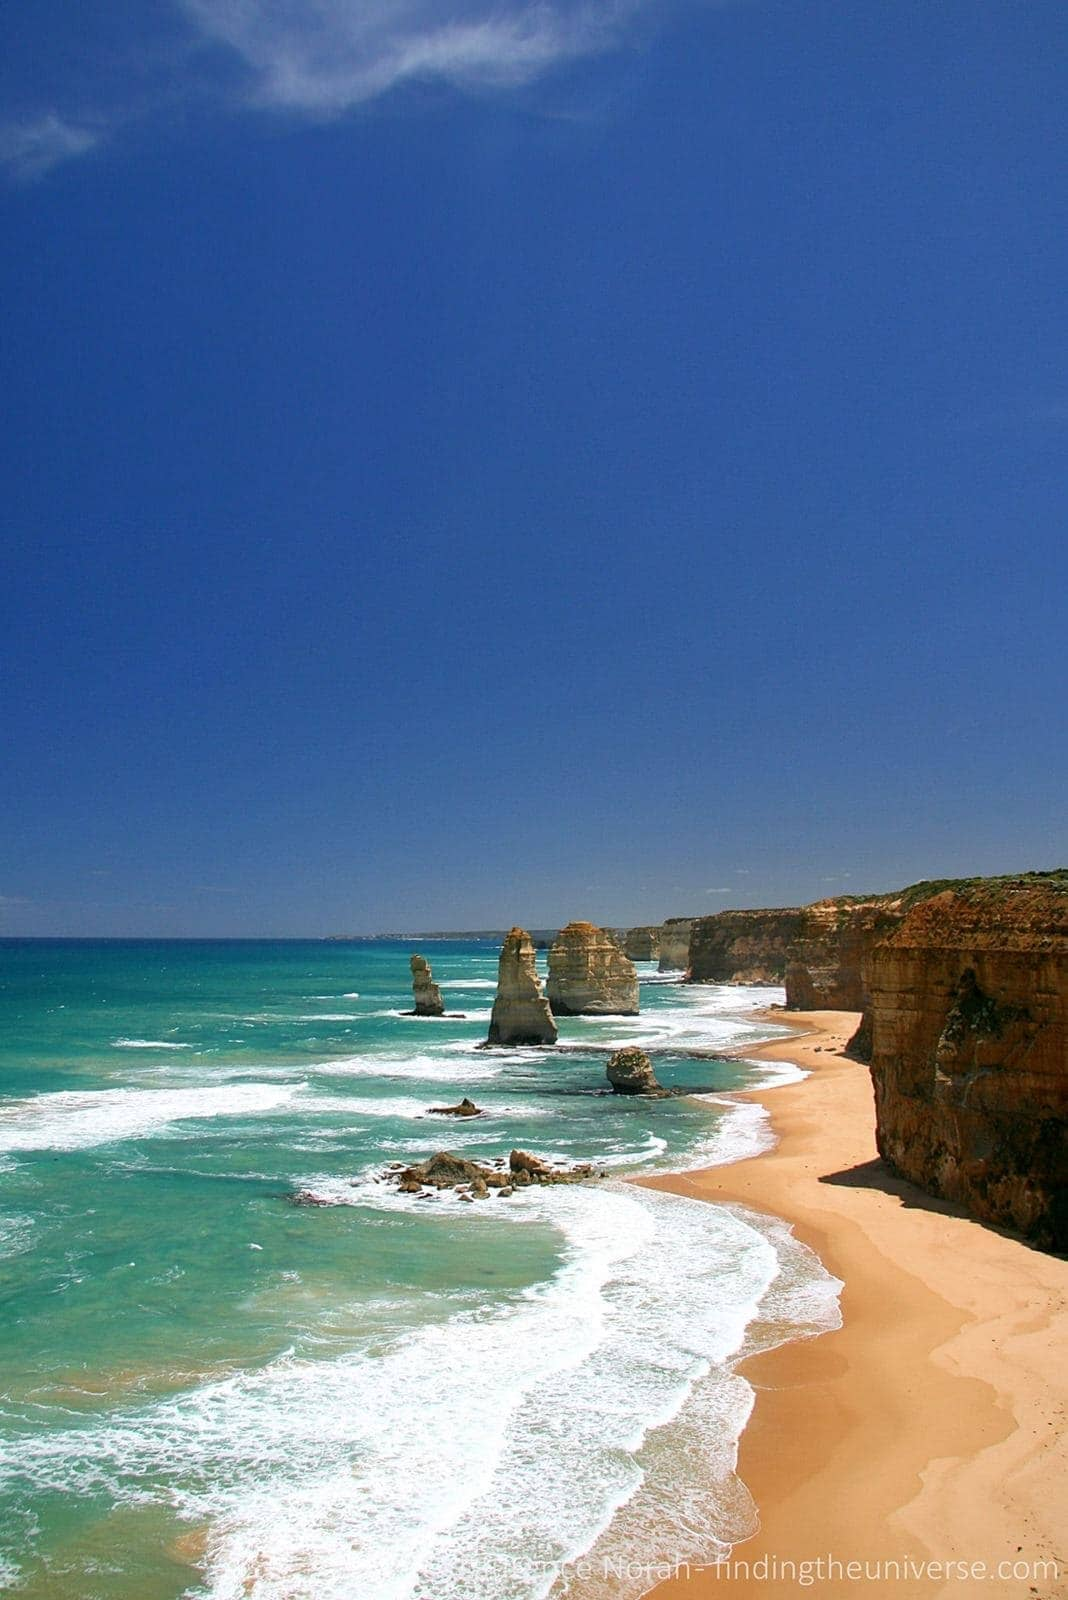 12%2520Apostles%2520coastline%2520beach%2520Australia%2520Great%2520Ocean%2520Road.png%255B3%255D - scaled